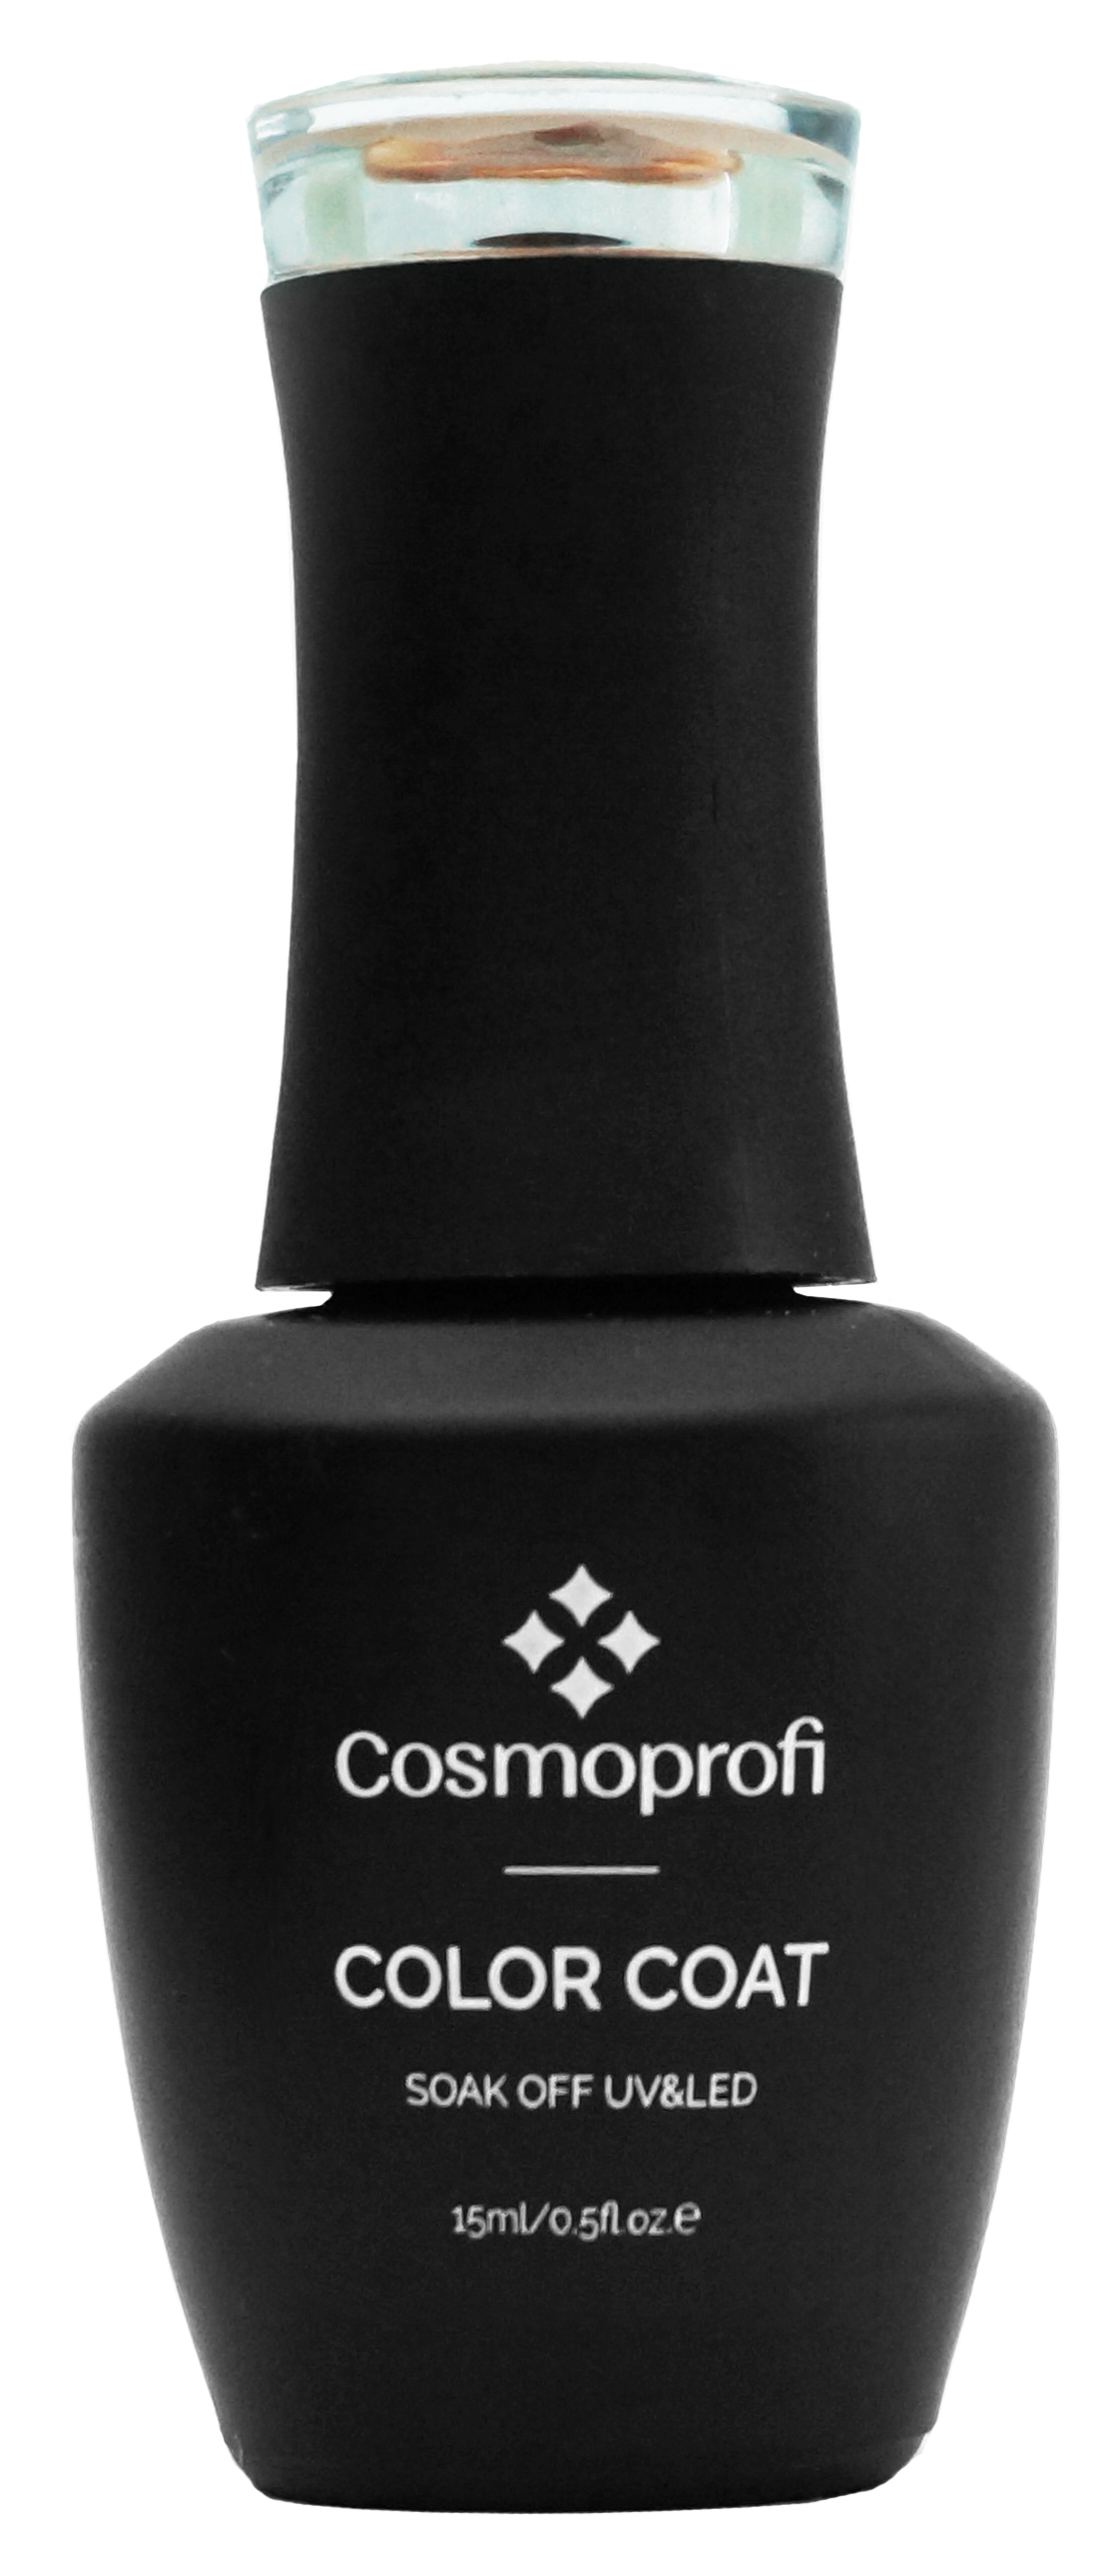 Гель-лак Cosmoprofi, Color coat № 9, 15 мл